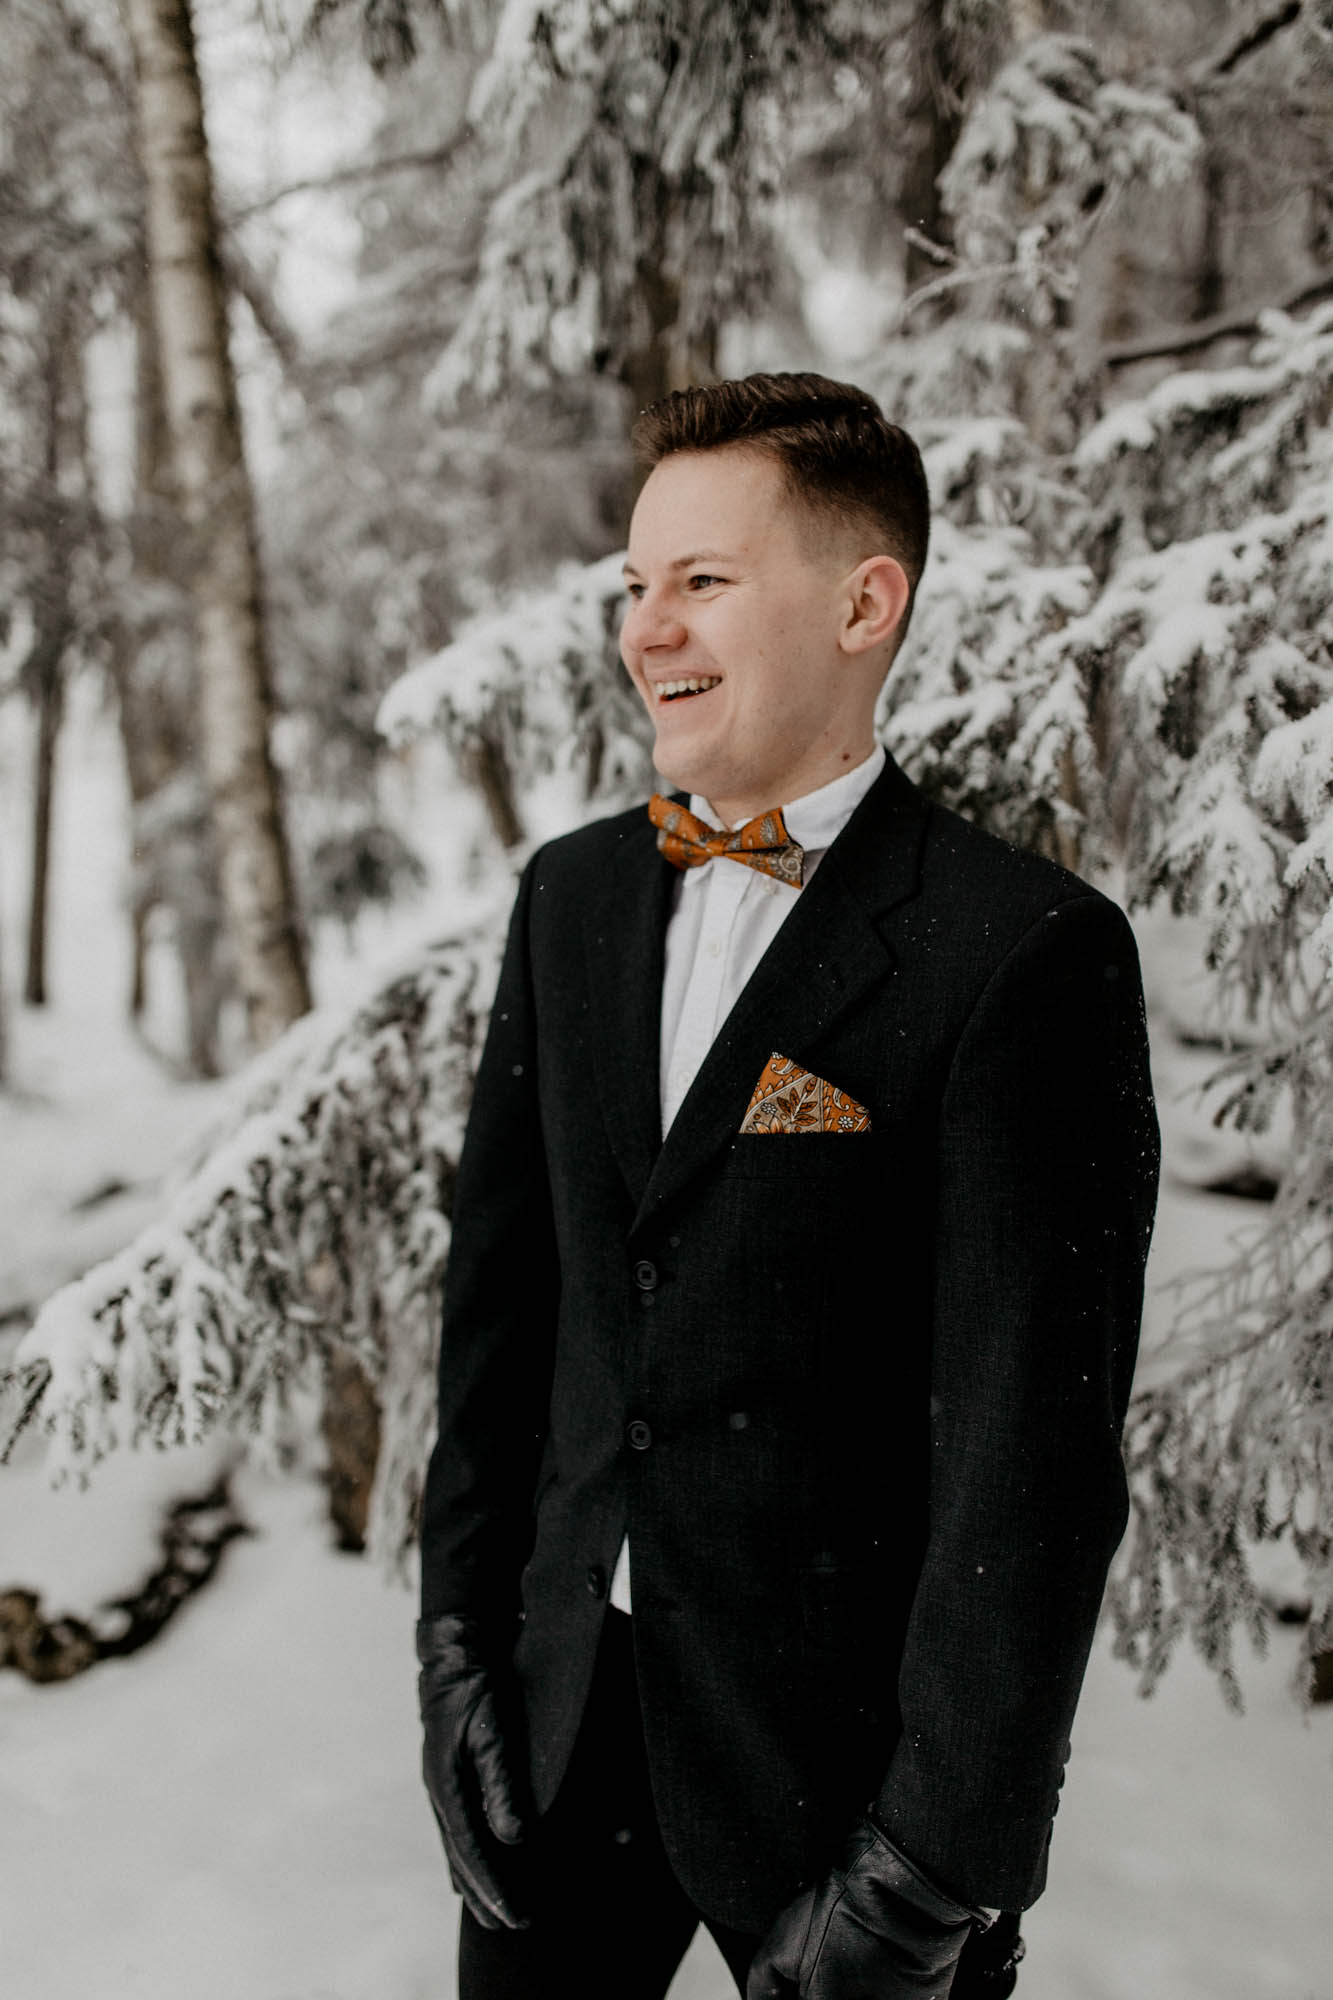 ashley_schulman_photography-winter_wedding_tampere-29.jpg